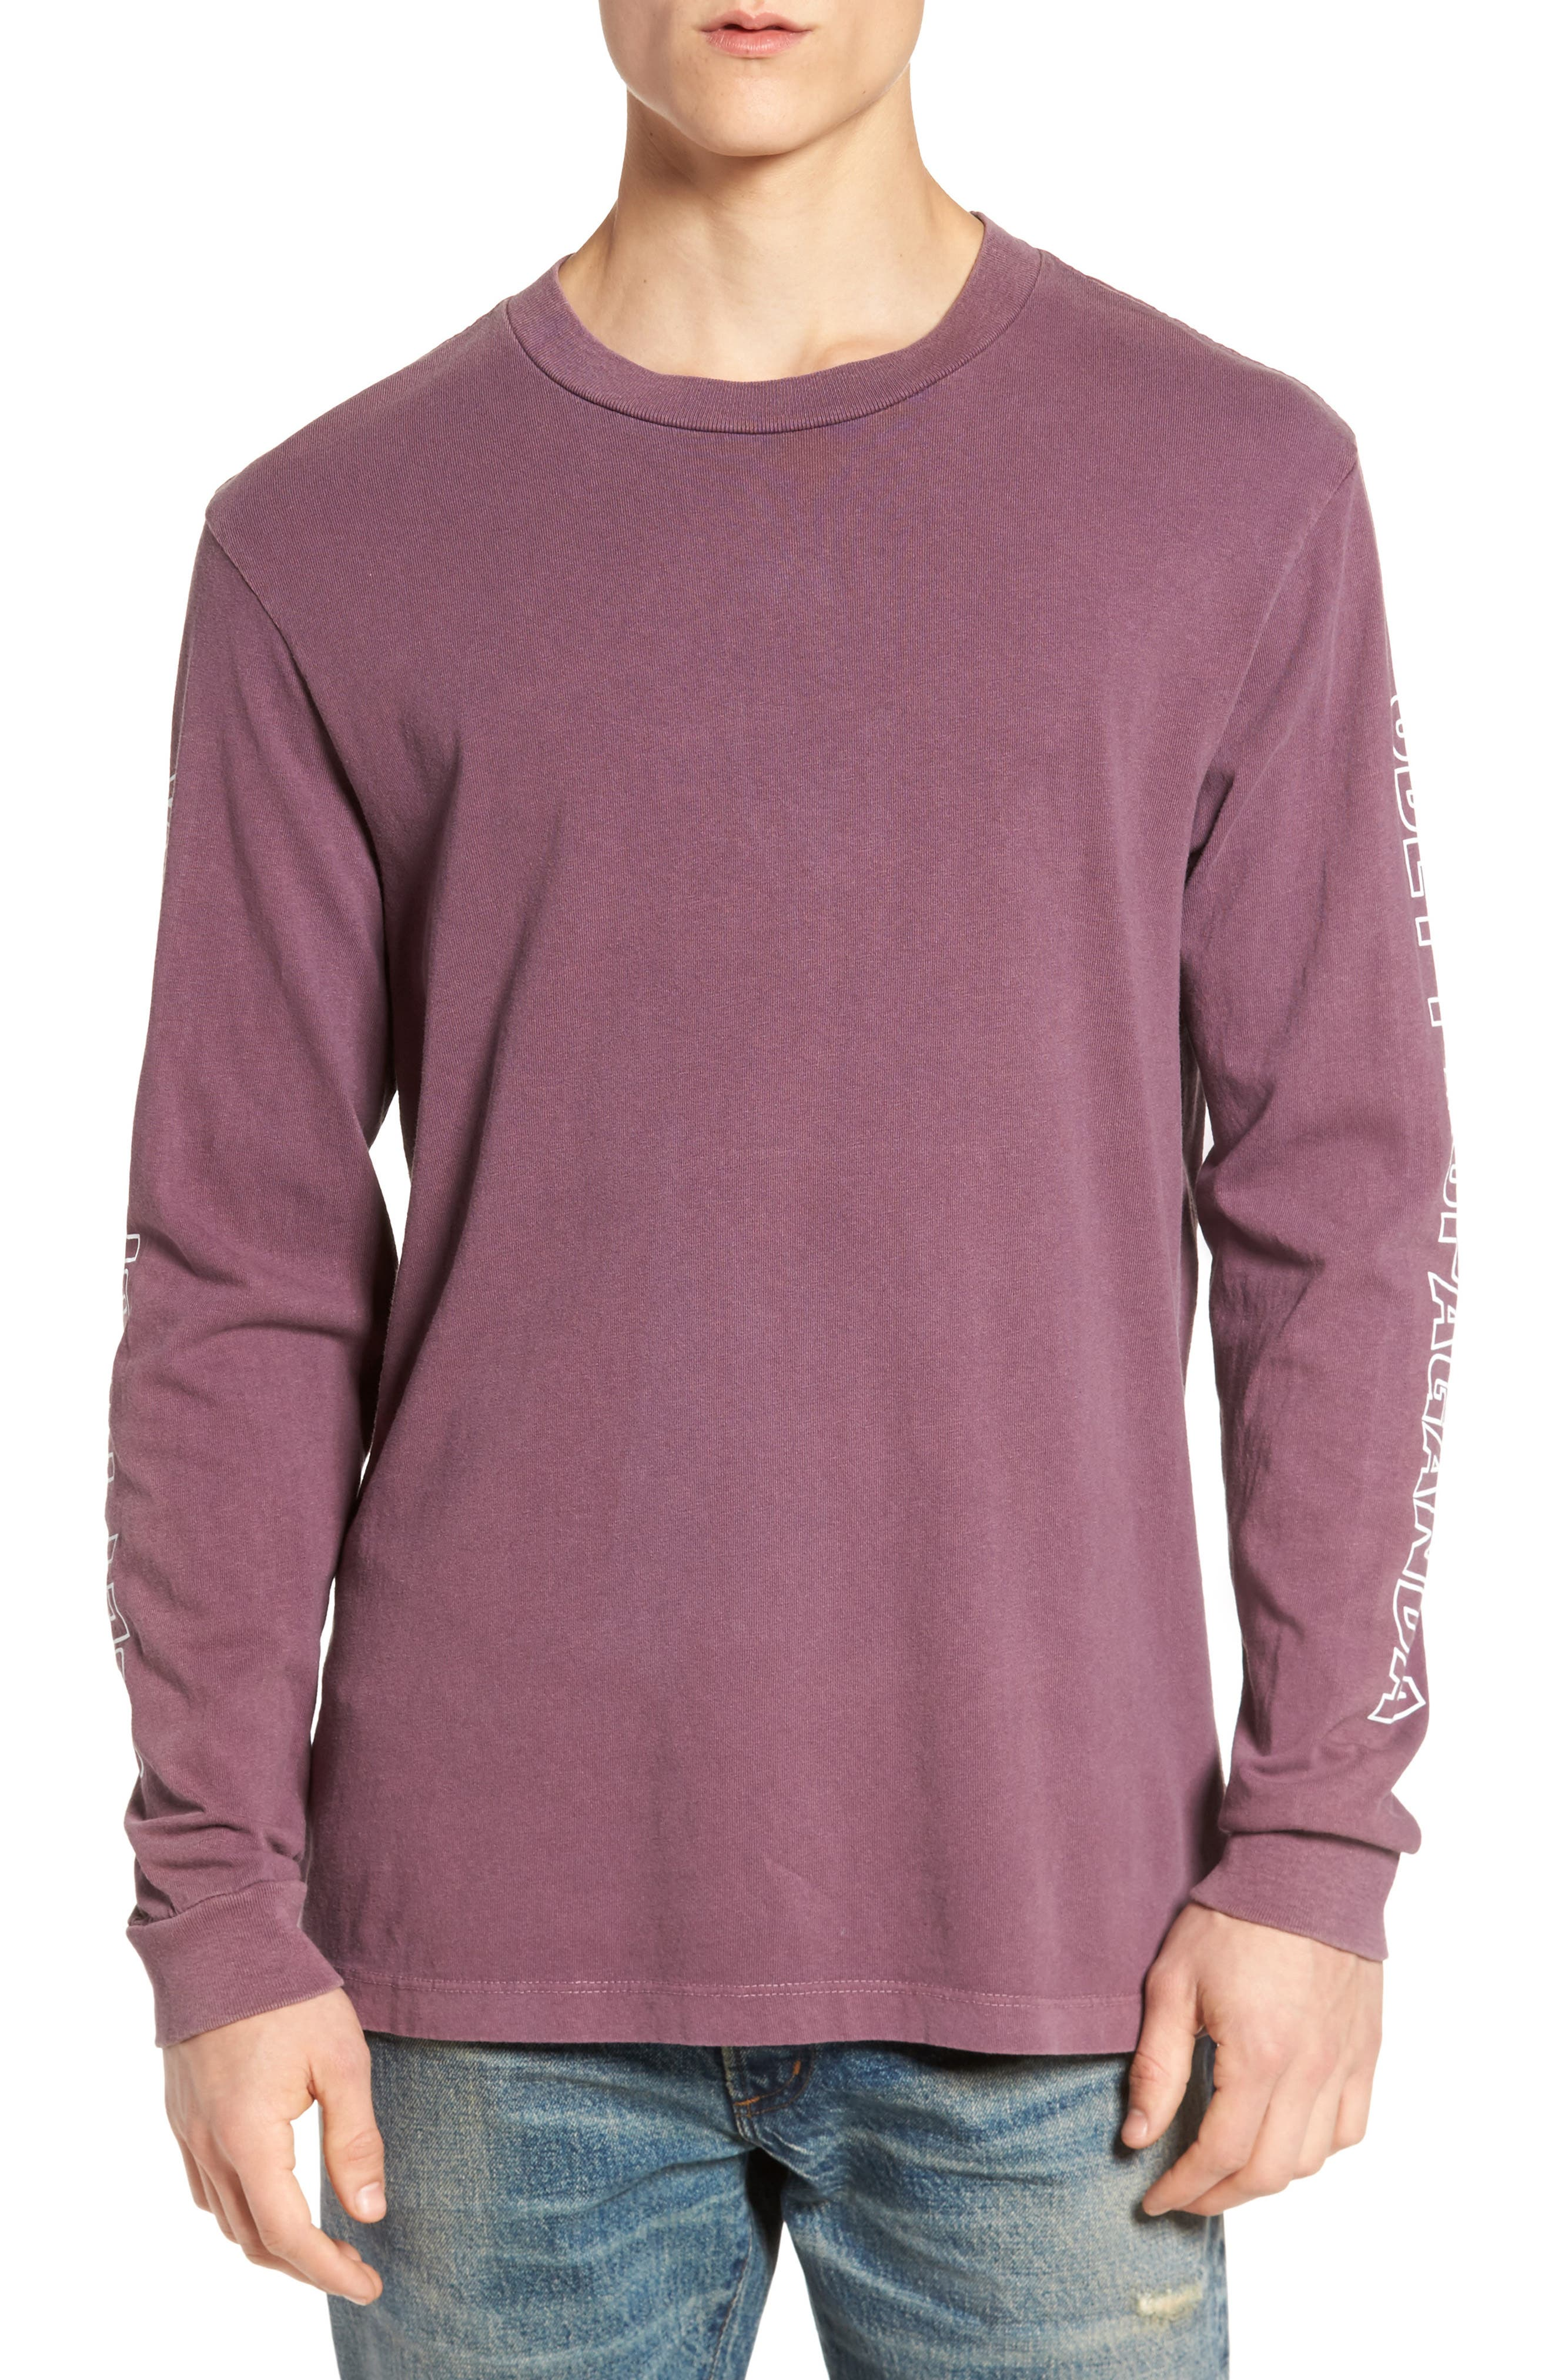 Obey Rough Draft Long Sleeve T-Shirt